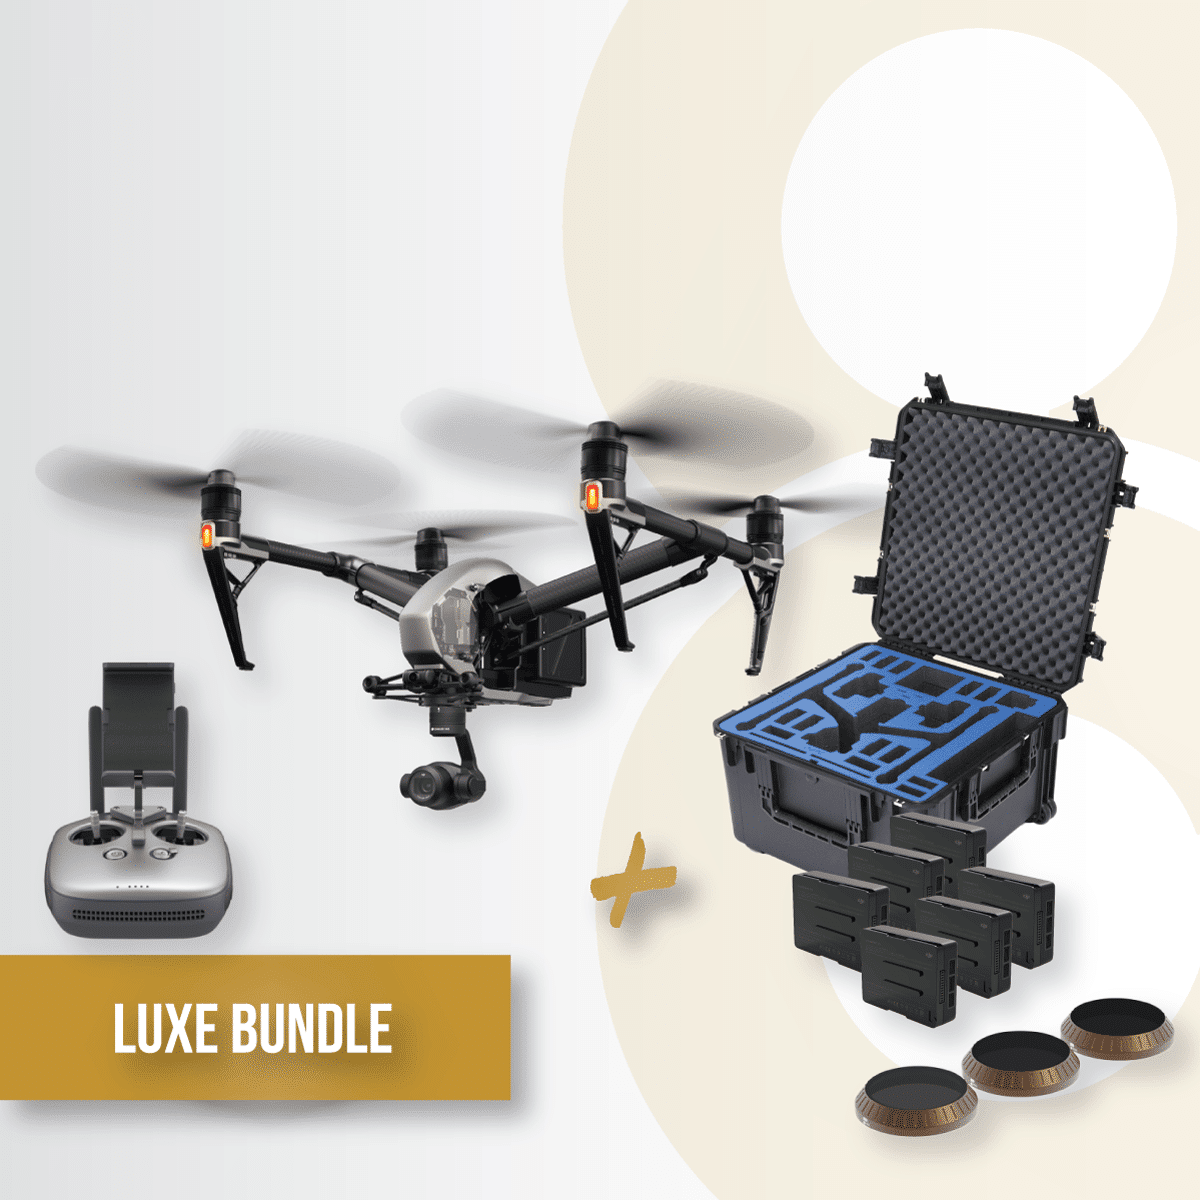 kit-free-swagbag-Bundle-gold-Inspire-2-XS4-Dji-remote-battery